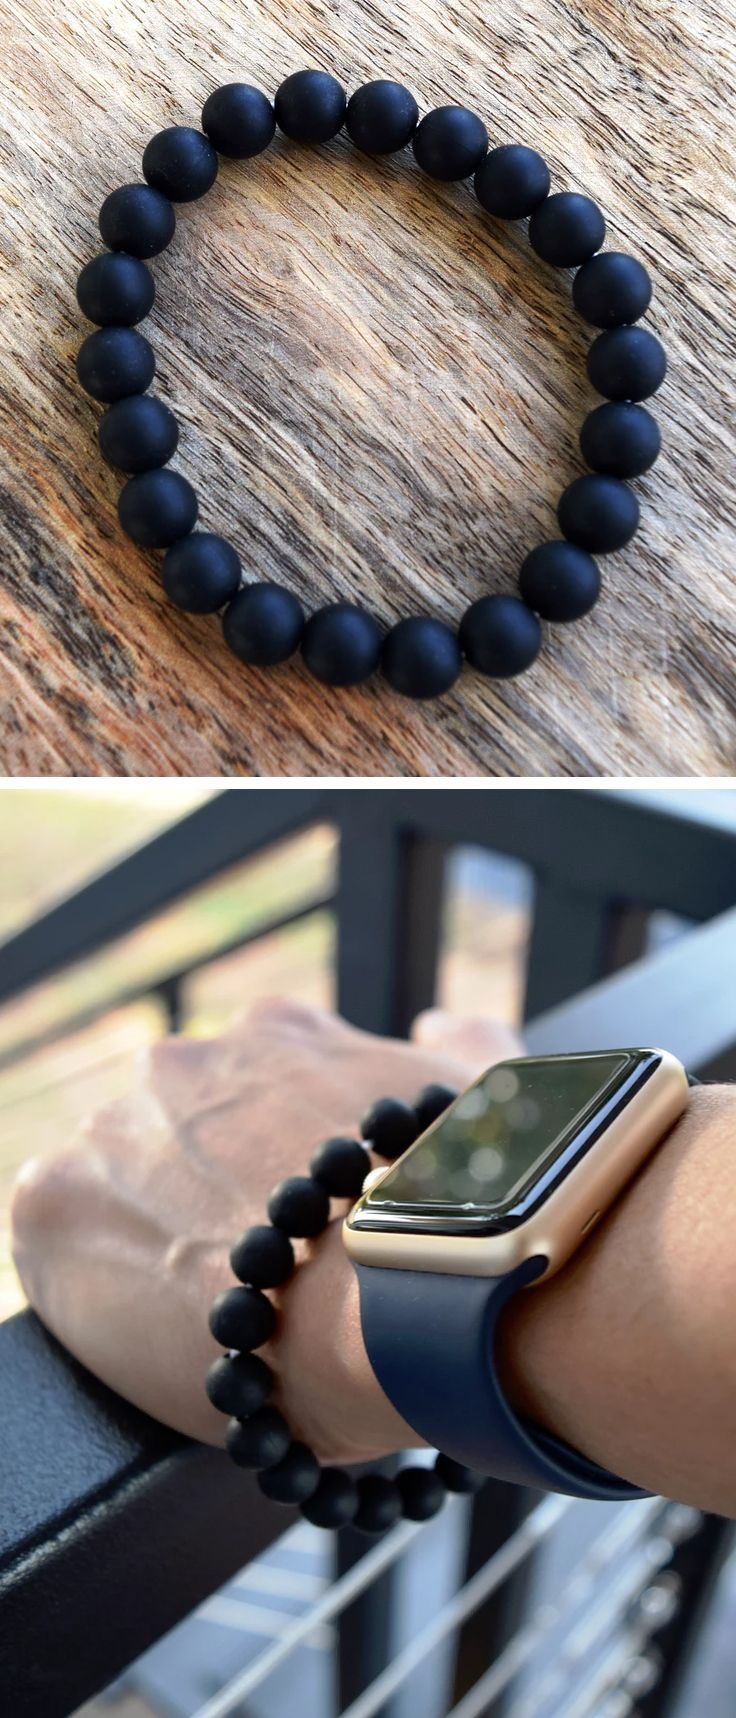 Men's Teething Bracelet - finally, some awesome stylish teething jewellery and accessories handmade especially for Dads from 100% non-toxic silicone beads by Zie and Me.